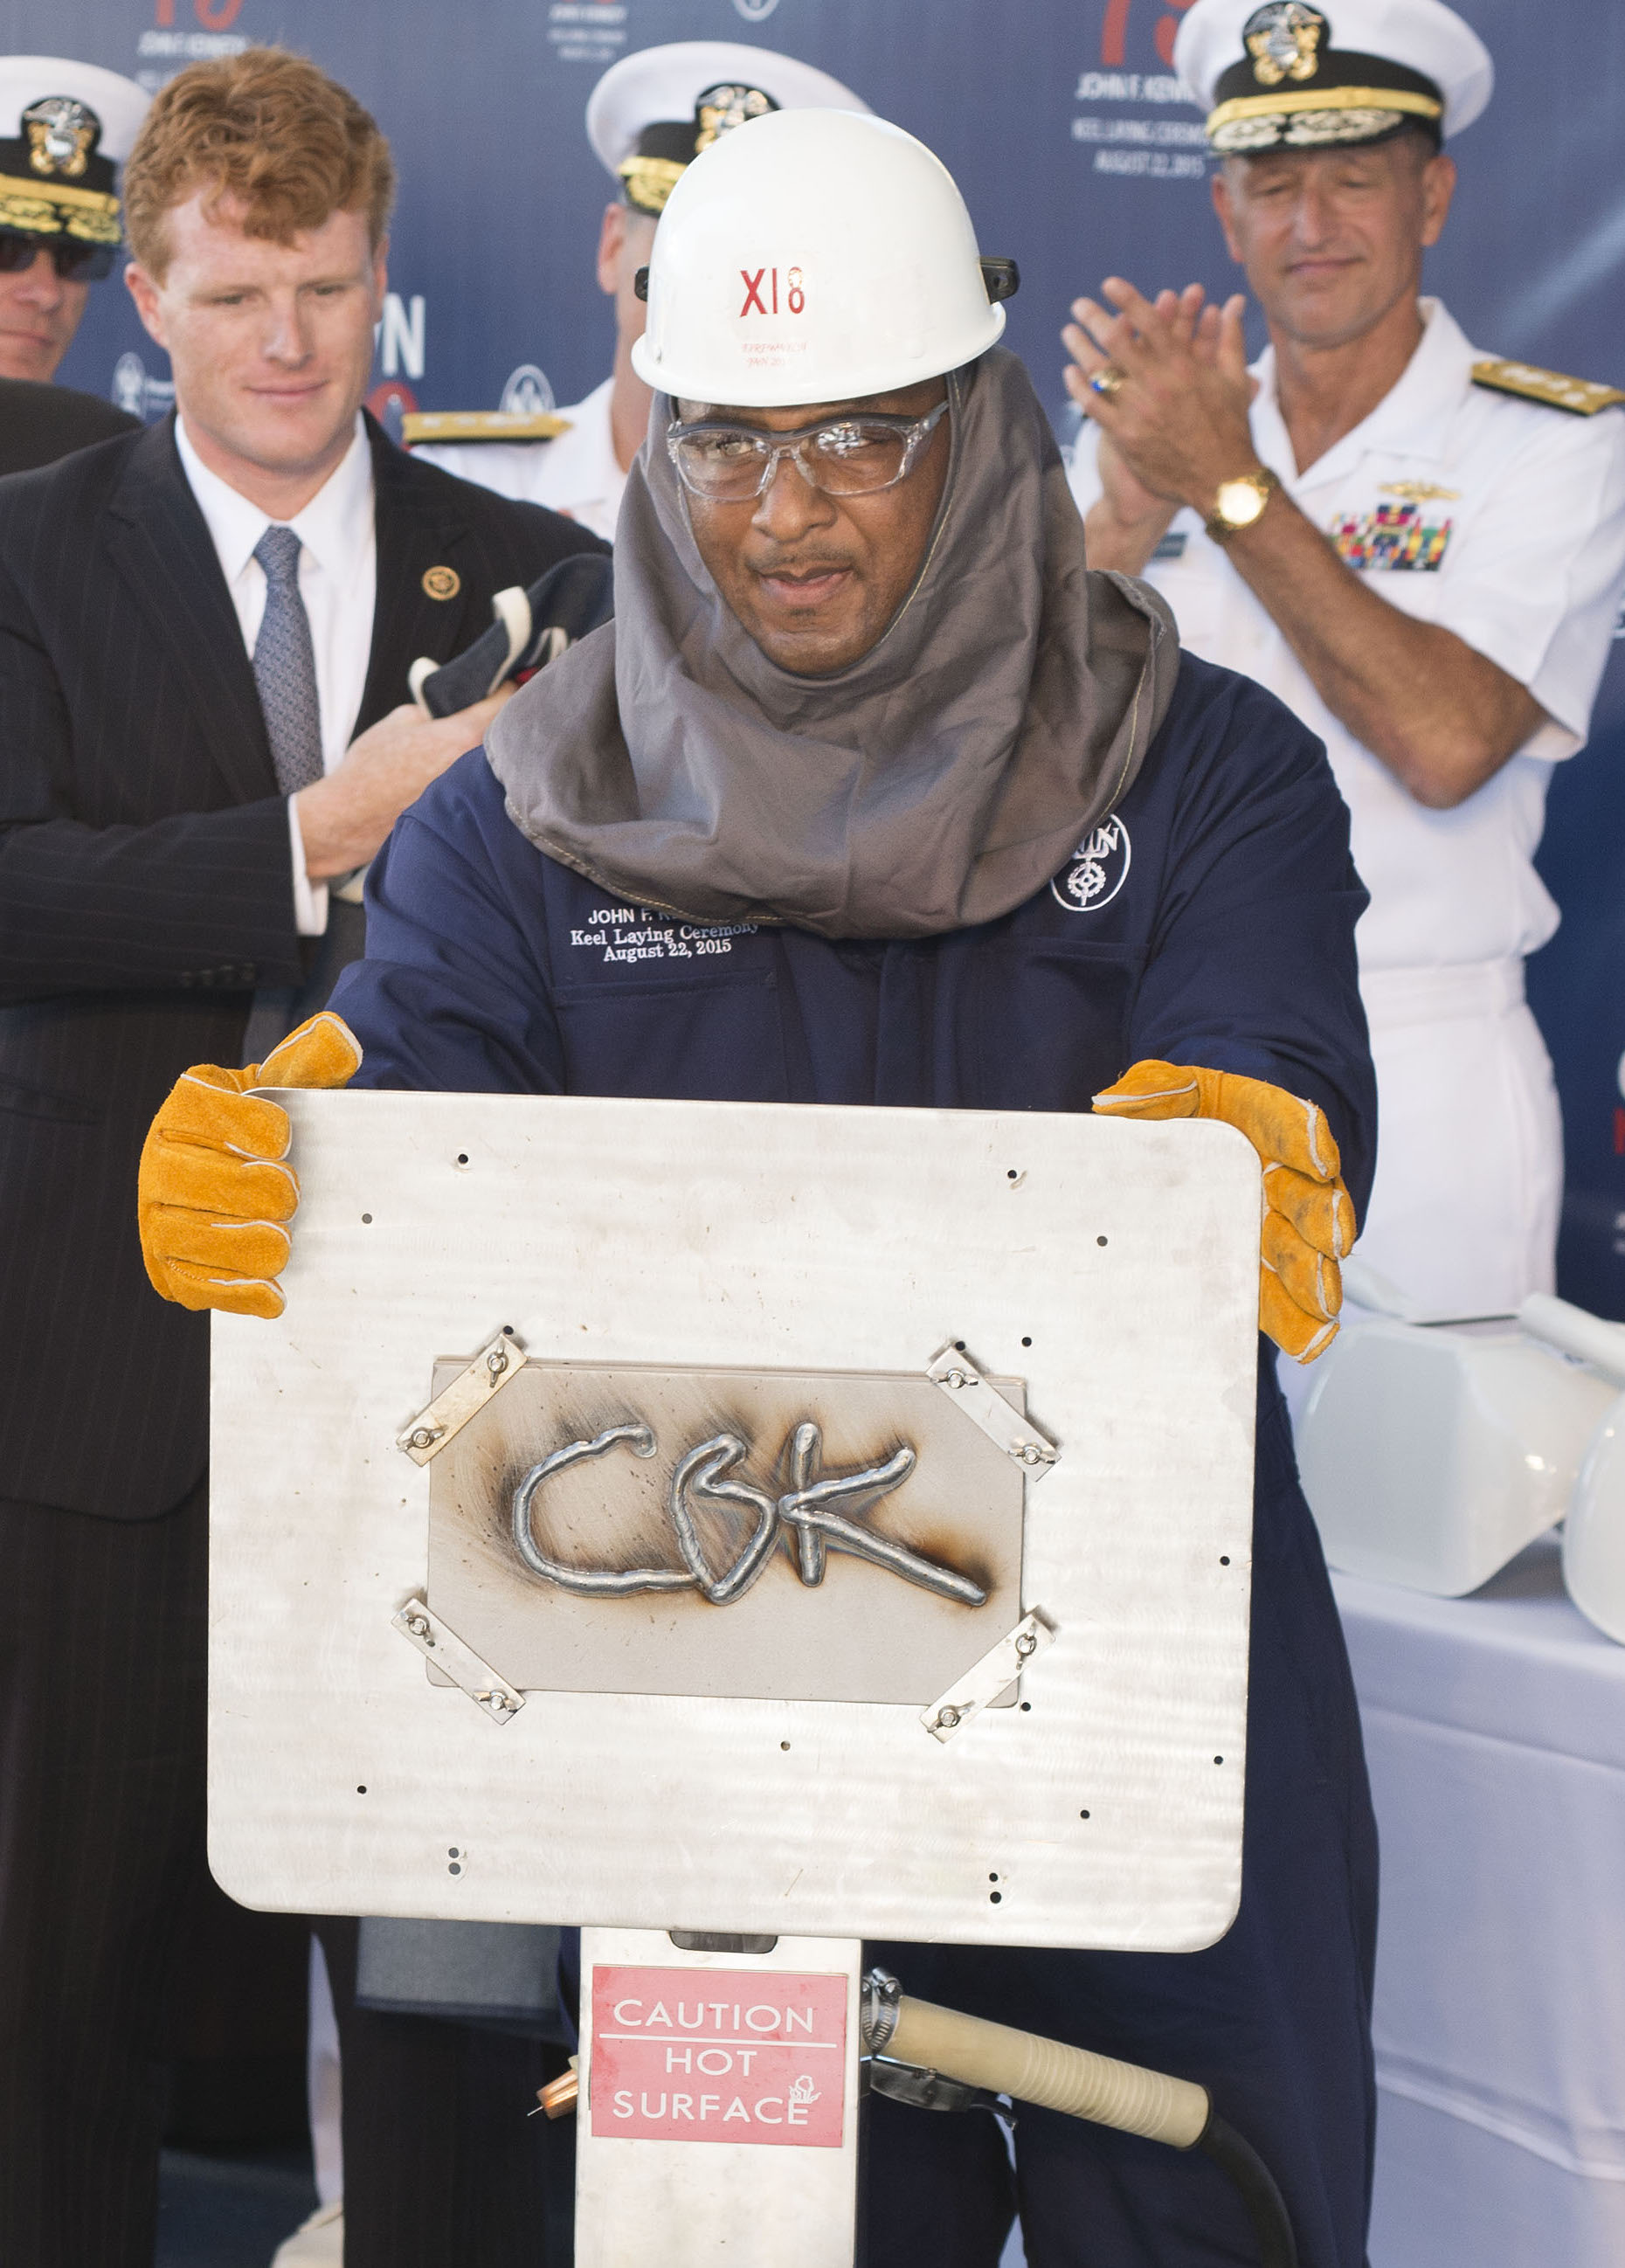 John F Kennedy Keel Laying Ceremony on Aug. 21, 2015. HII Photo